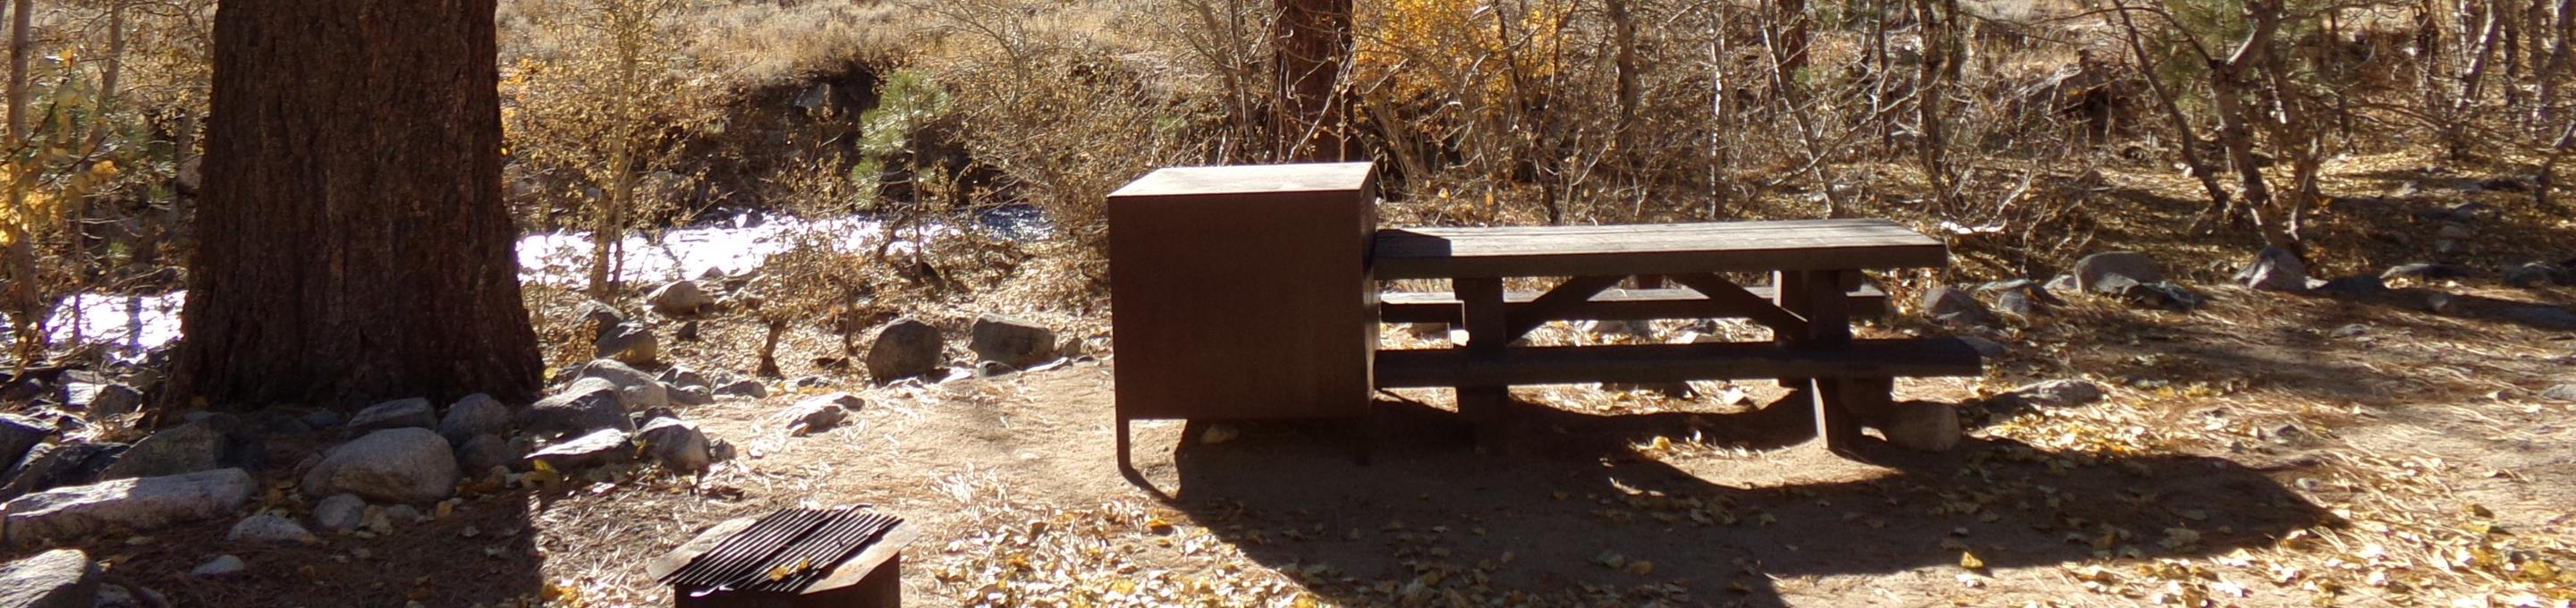 Upper Sage Flat Campground creekside site #17 featuring picnic table, food storage, and fire pit.